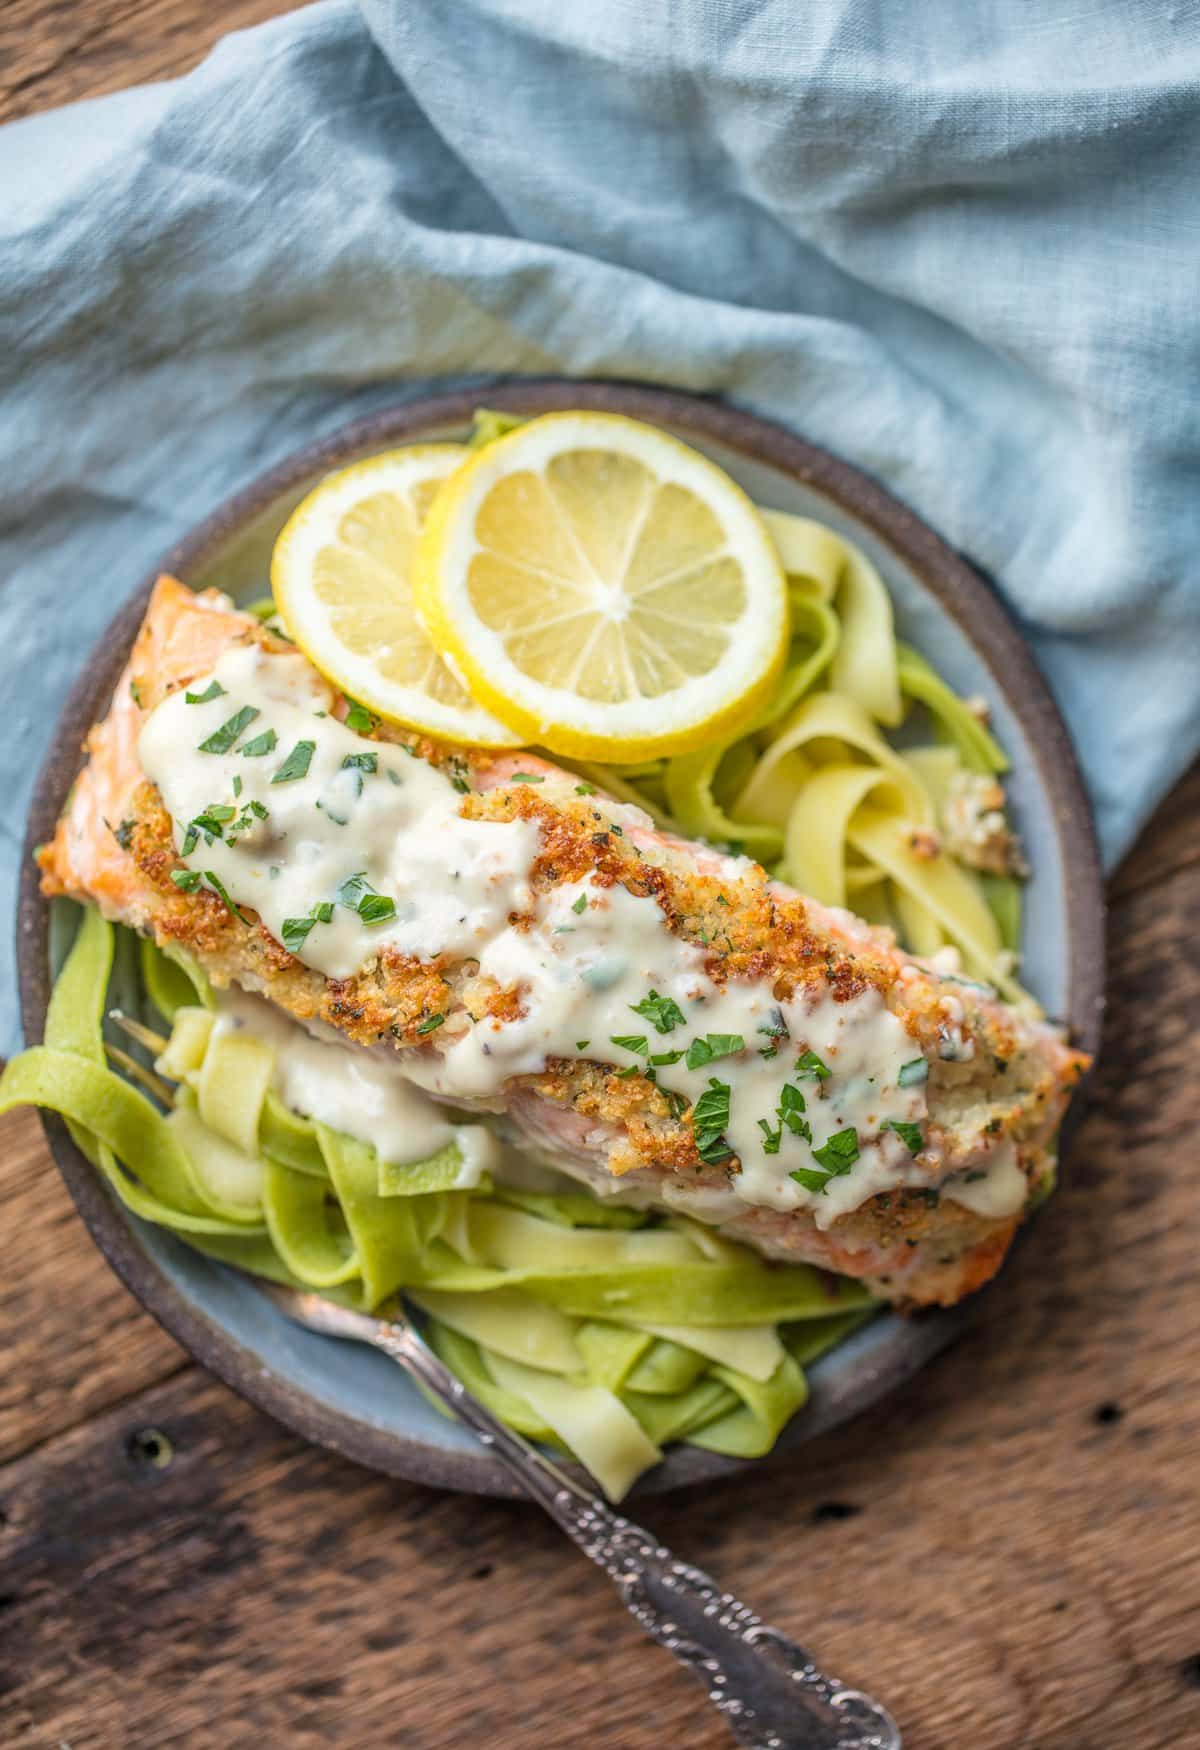 PARMESAN CRUSTED WHITE WINE DIJON SALMON is our very favorite way to enjoy seafood! Salmon coated with a crispy garlic parmesan crust and drenched in an amazing white wine dijon. TO DIE FOR!